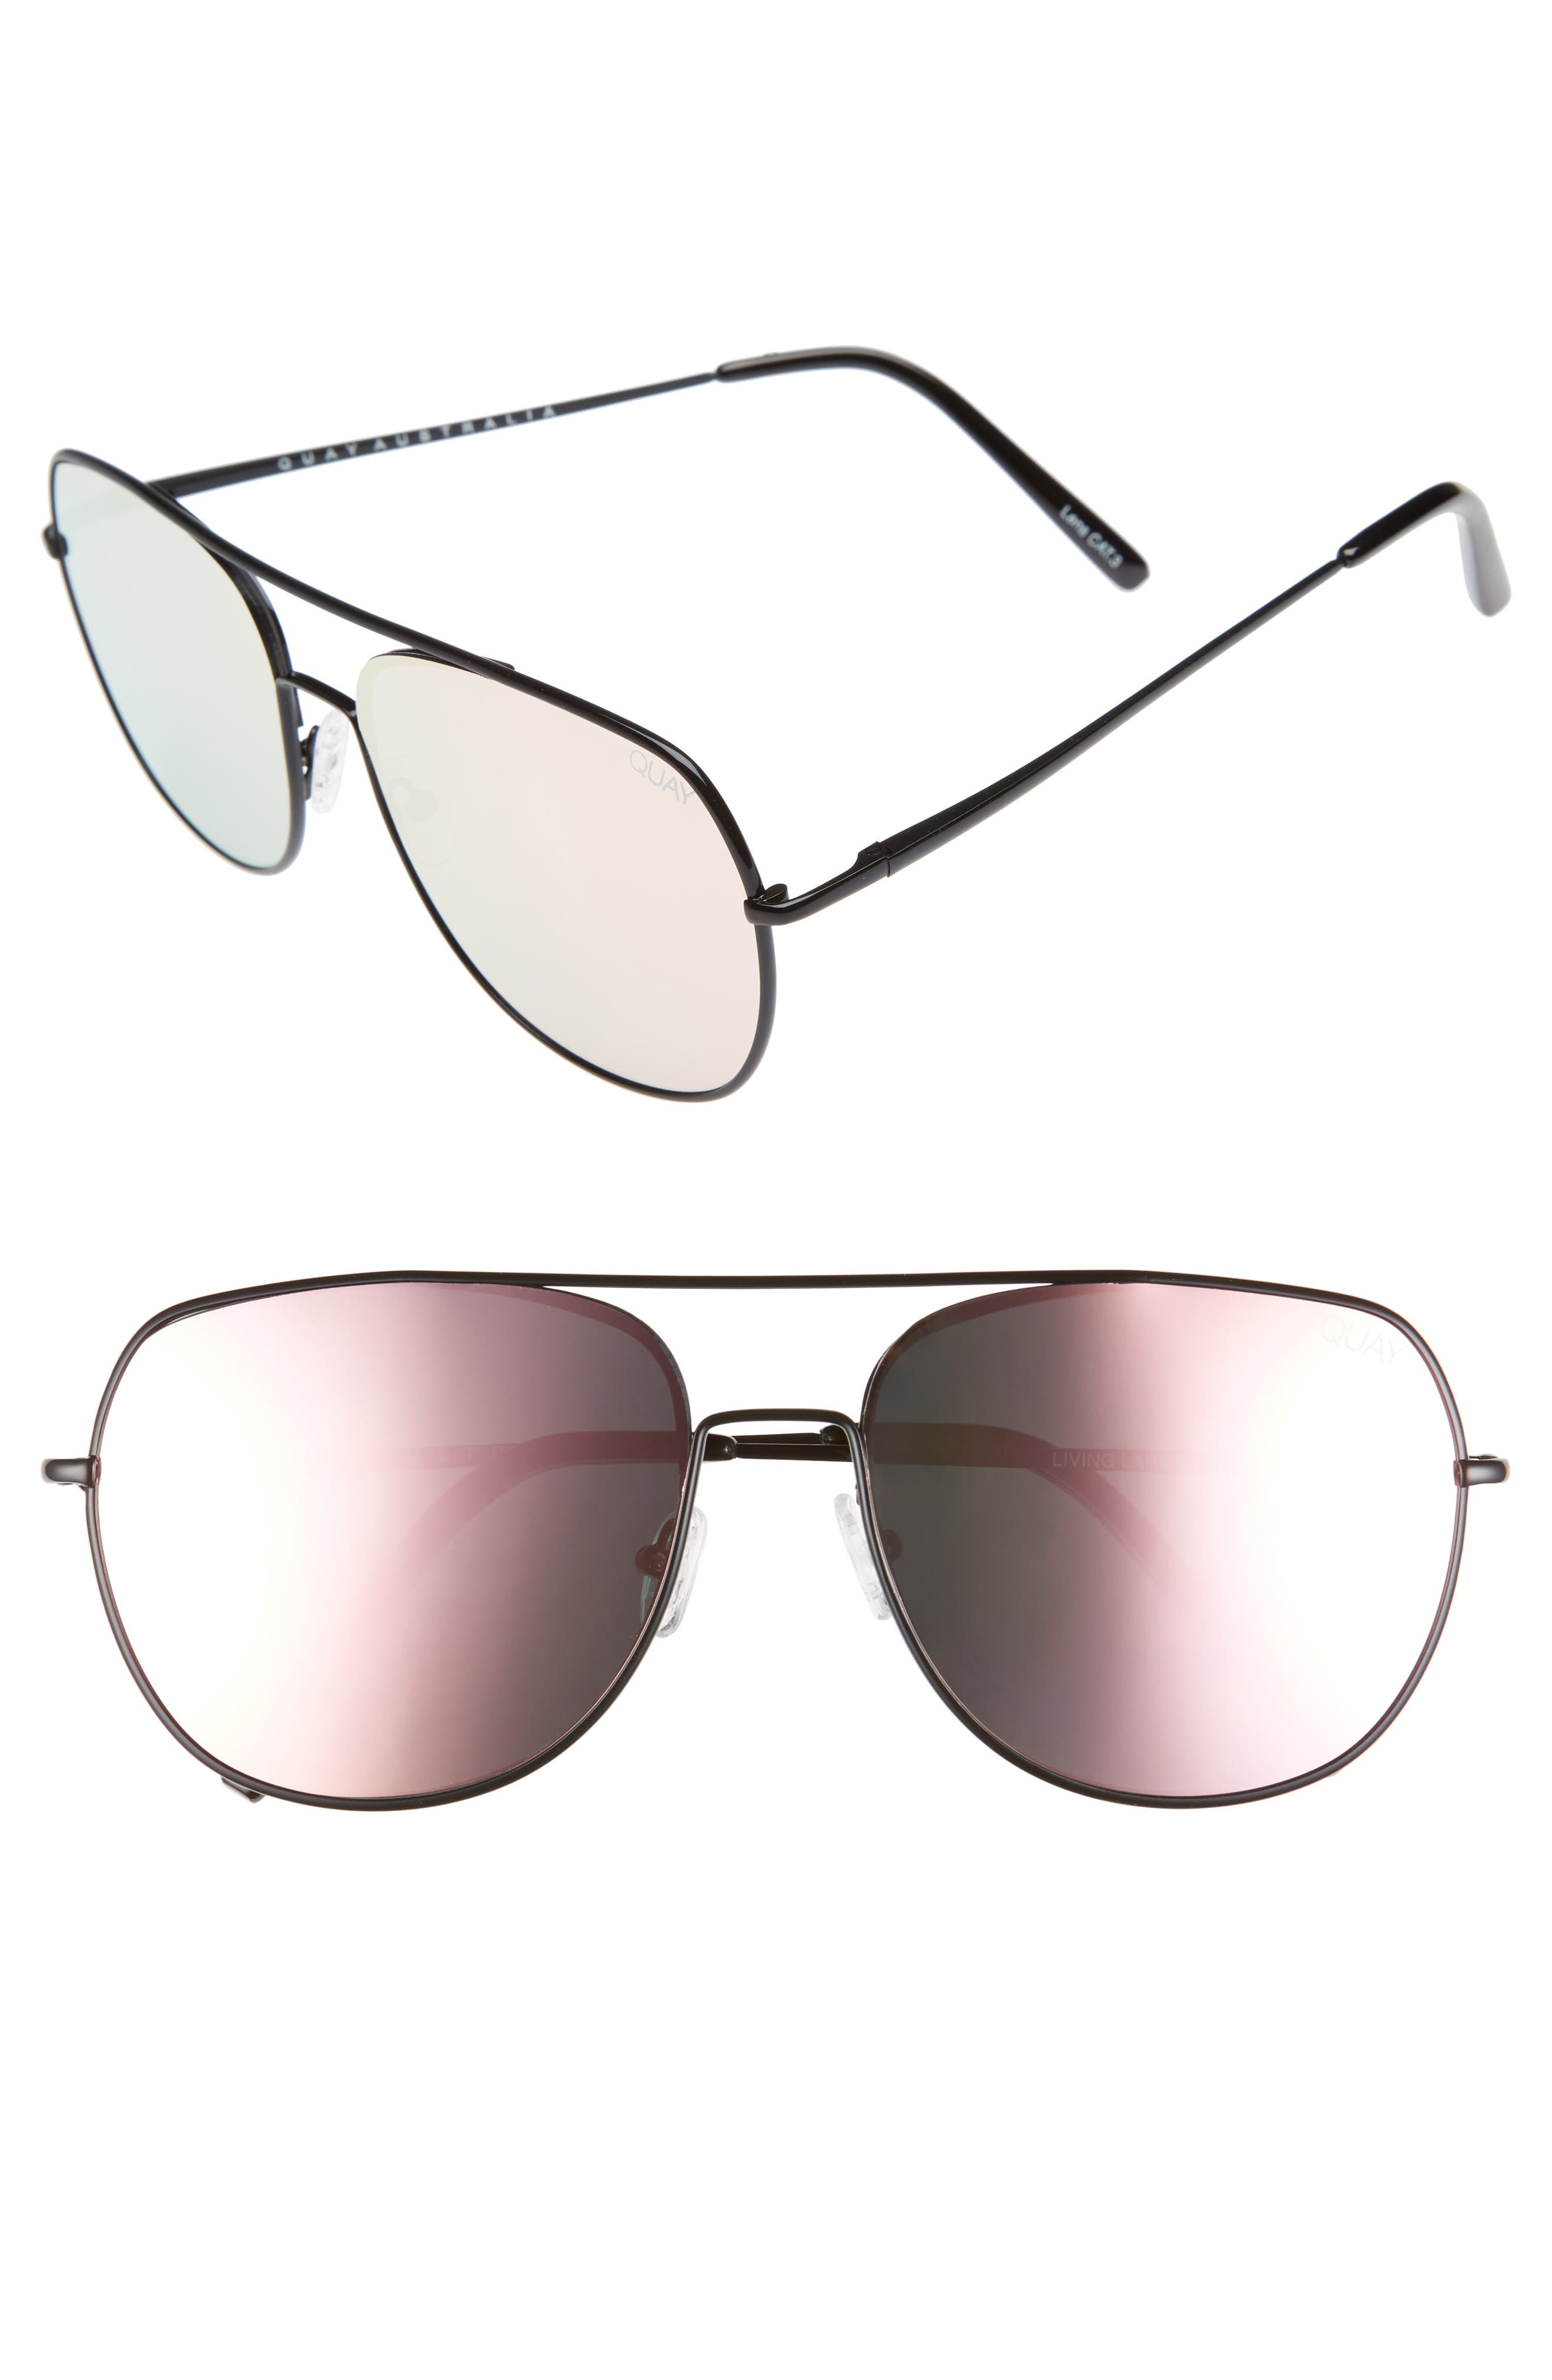 Living Large 60mm Mirrored Aviator Sunglasses,                             Main thumbnail 1, color,                             001